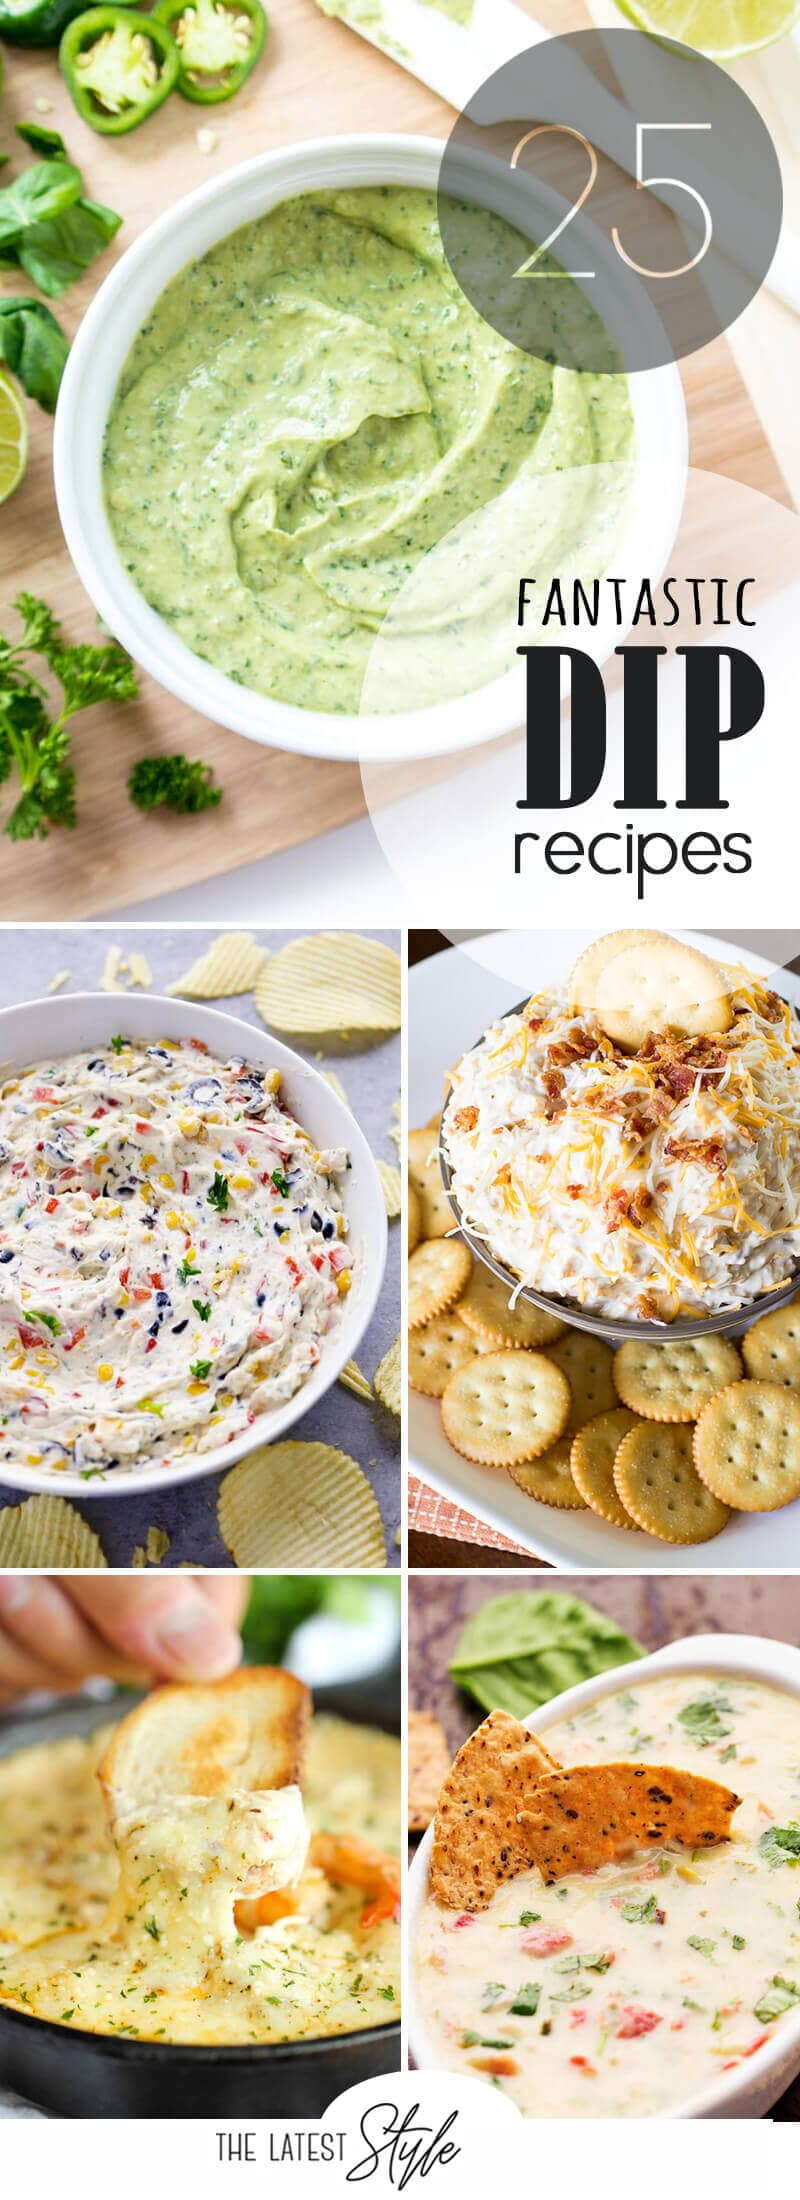 25 Heavenly Dip Recipes to Complement Your Super Bowl Snacks